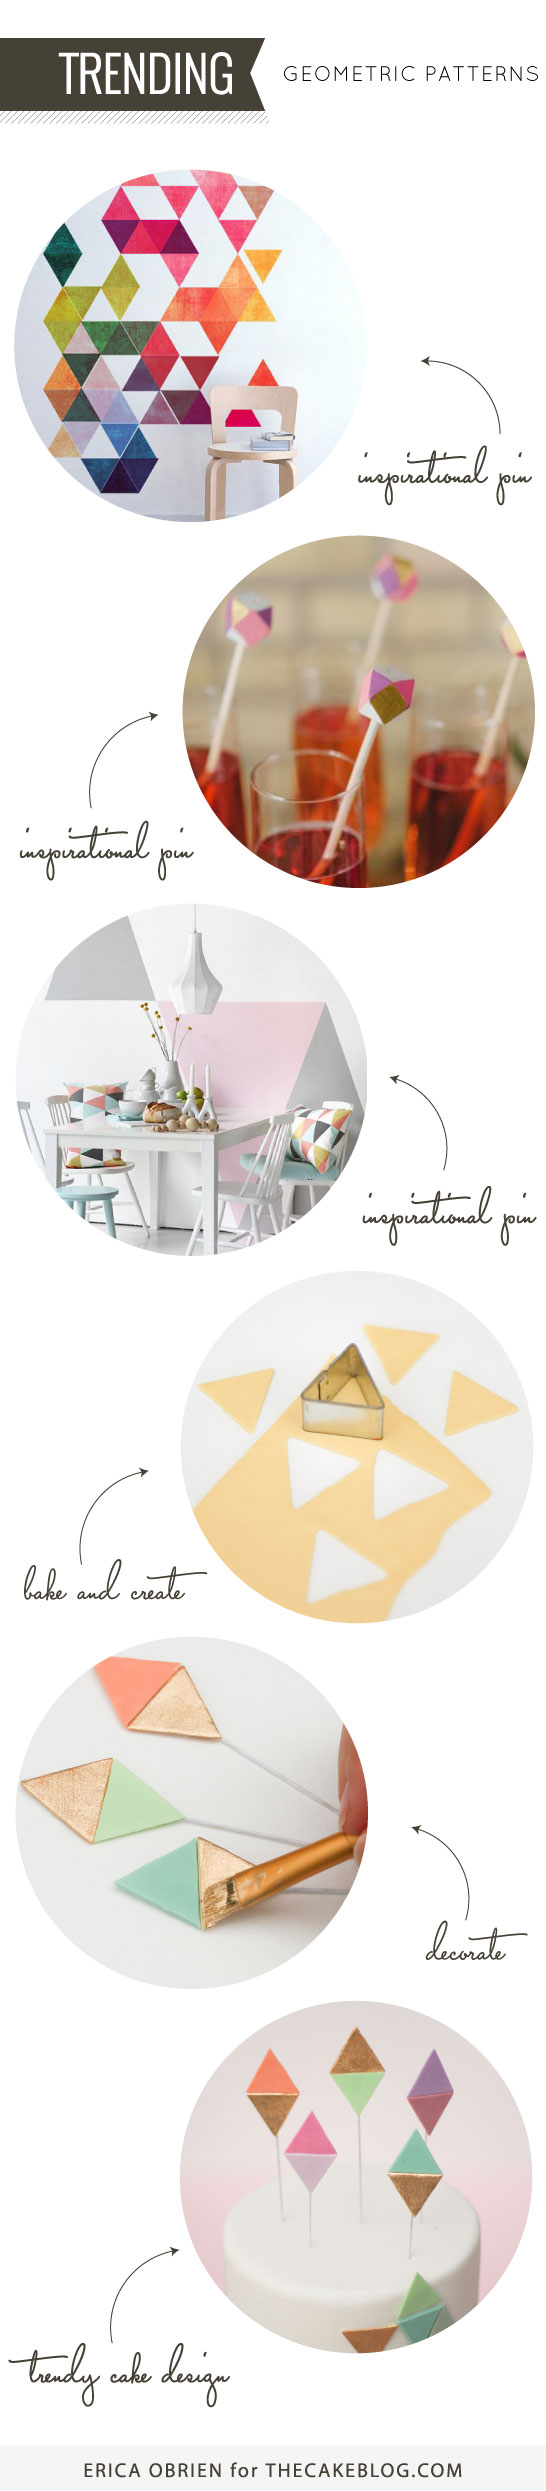 Geometric Patterns | translating trends into cake designs | by Erica OBrien for TheCakeBlog.com